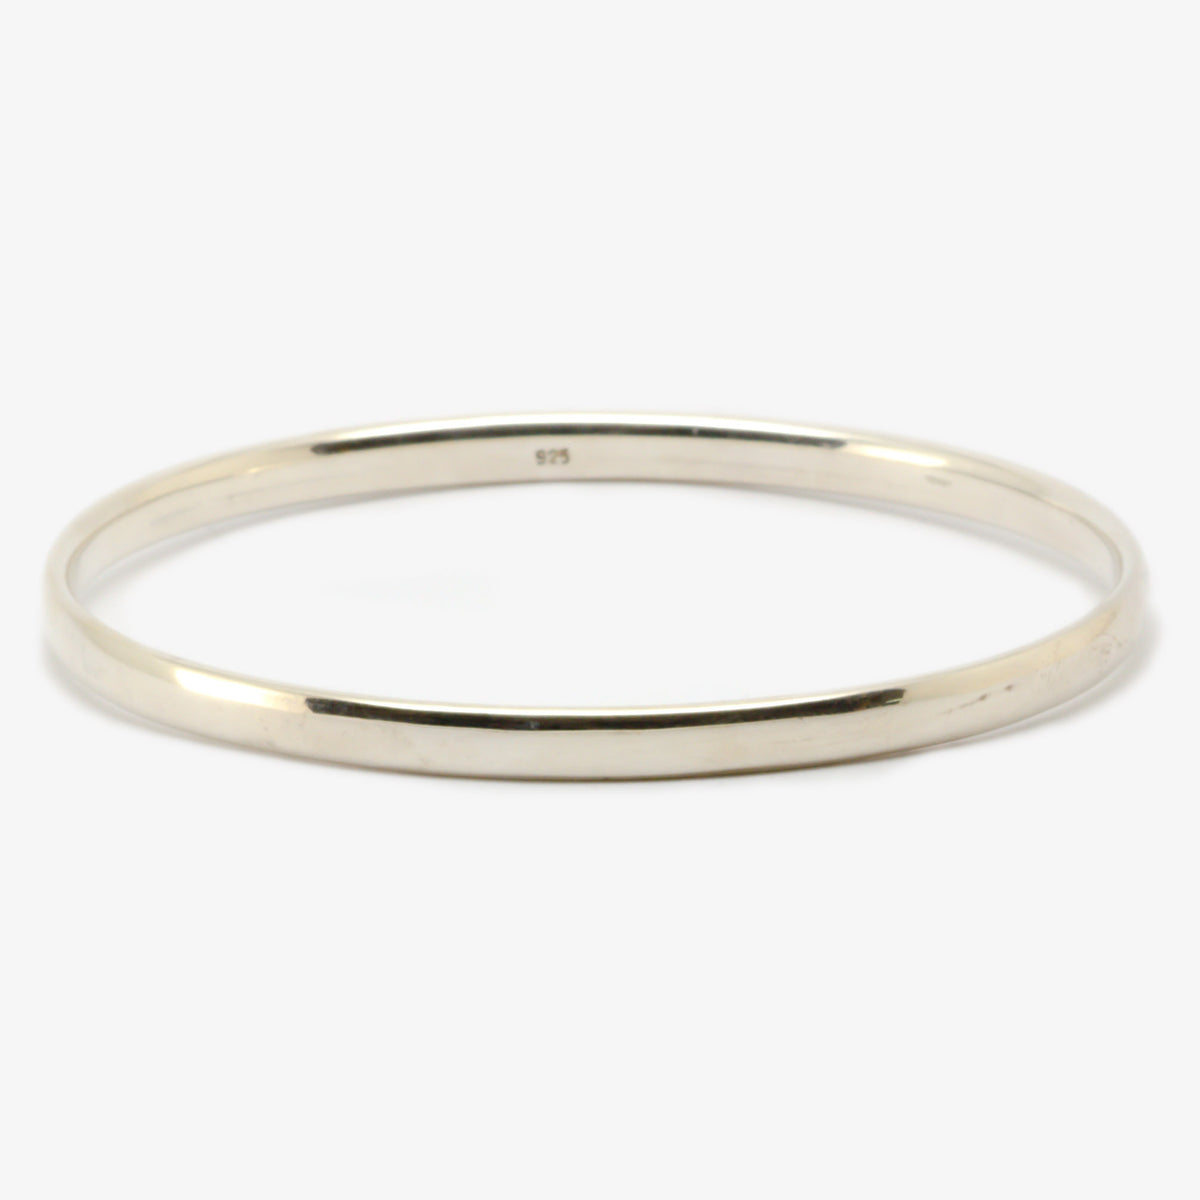 Picture of the bangle in silver with a width of 0.5 cm and in an oval shape front view.